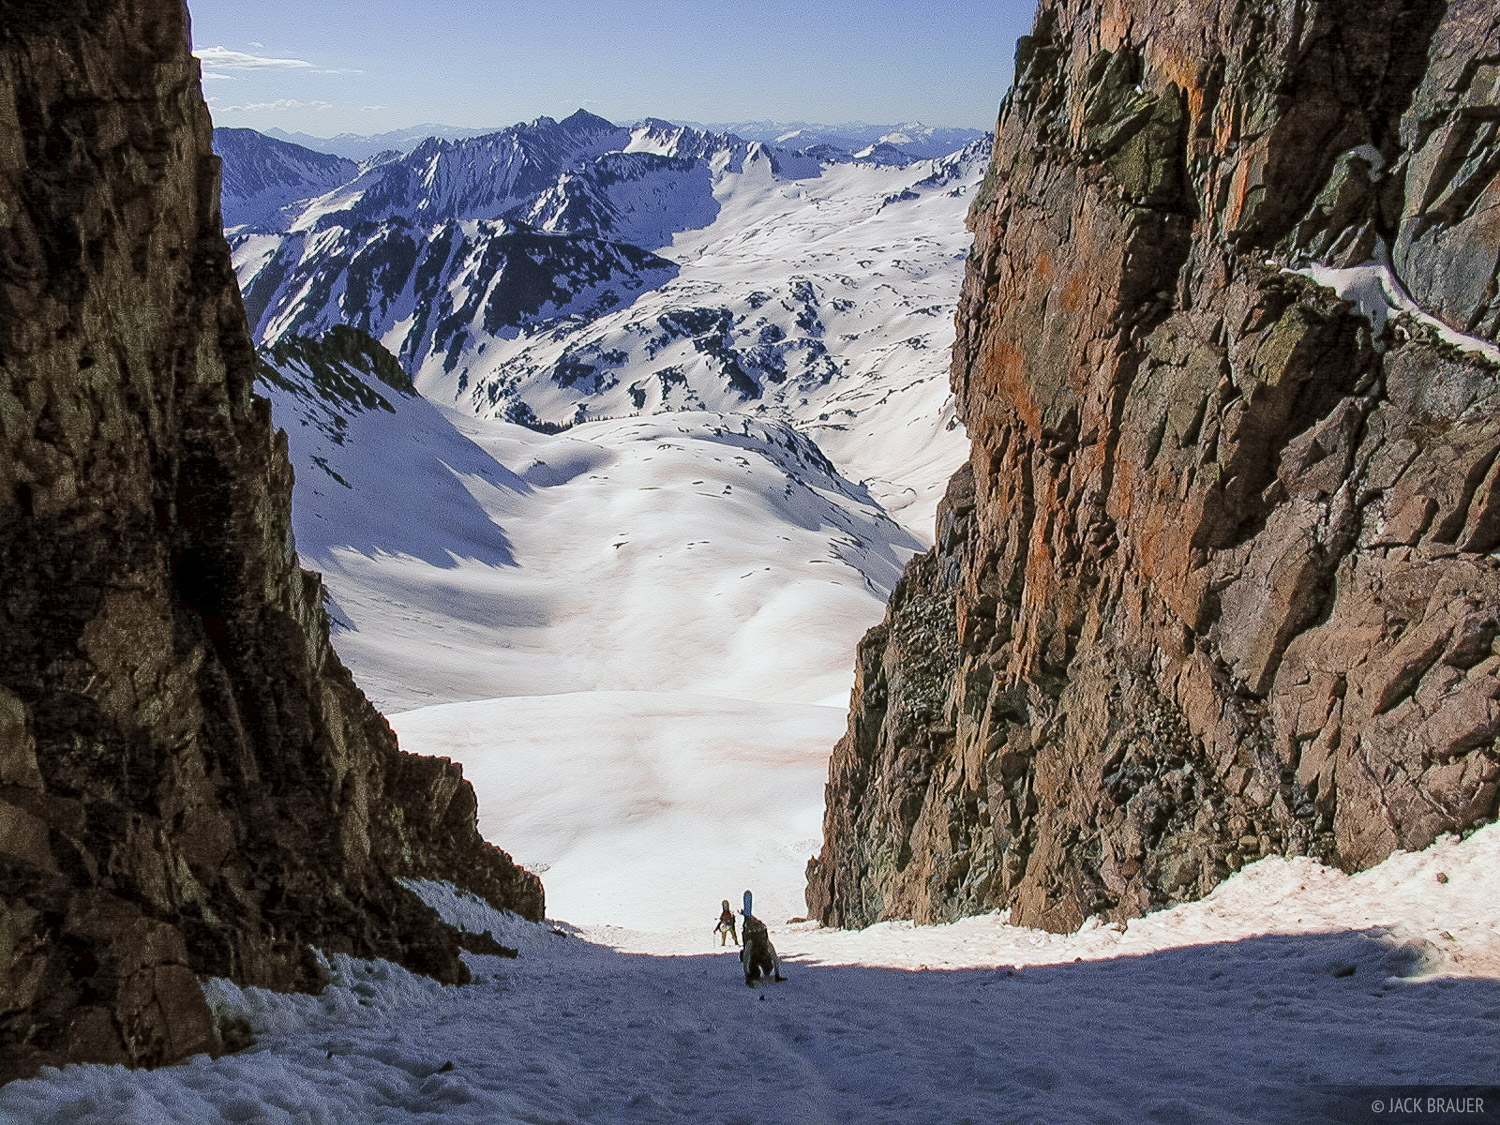 hiking up an enormous chute on Castle Peak, a fourteener in the Elk Mountains - May